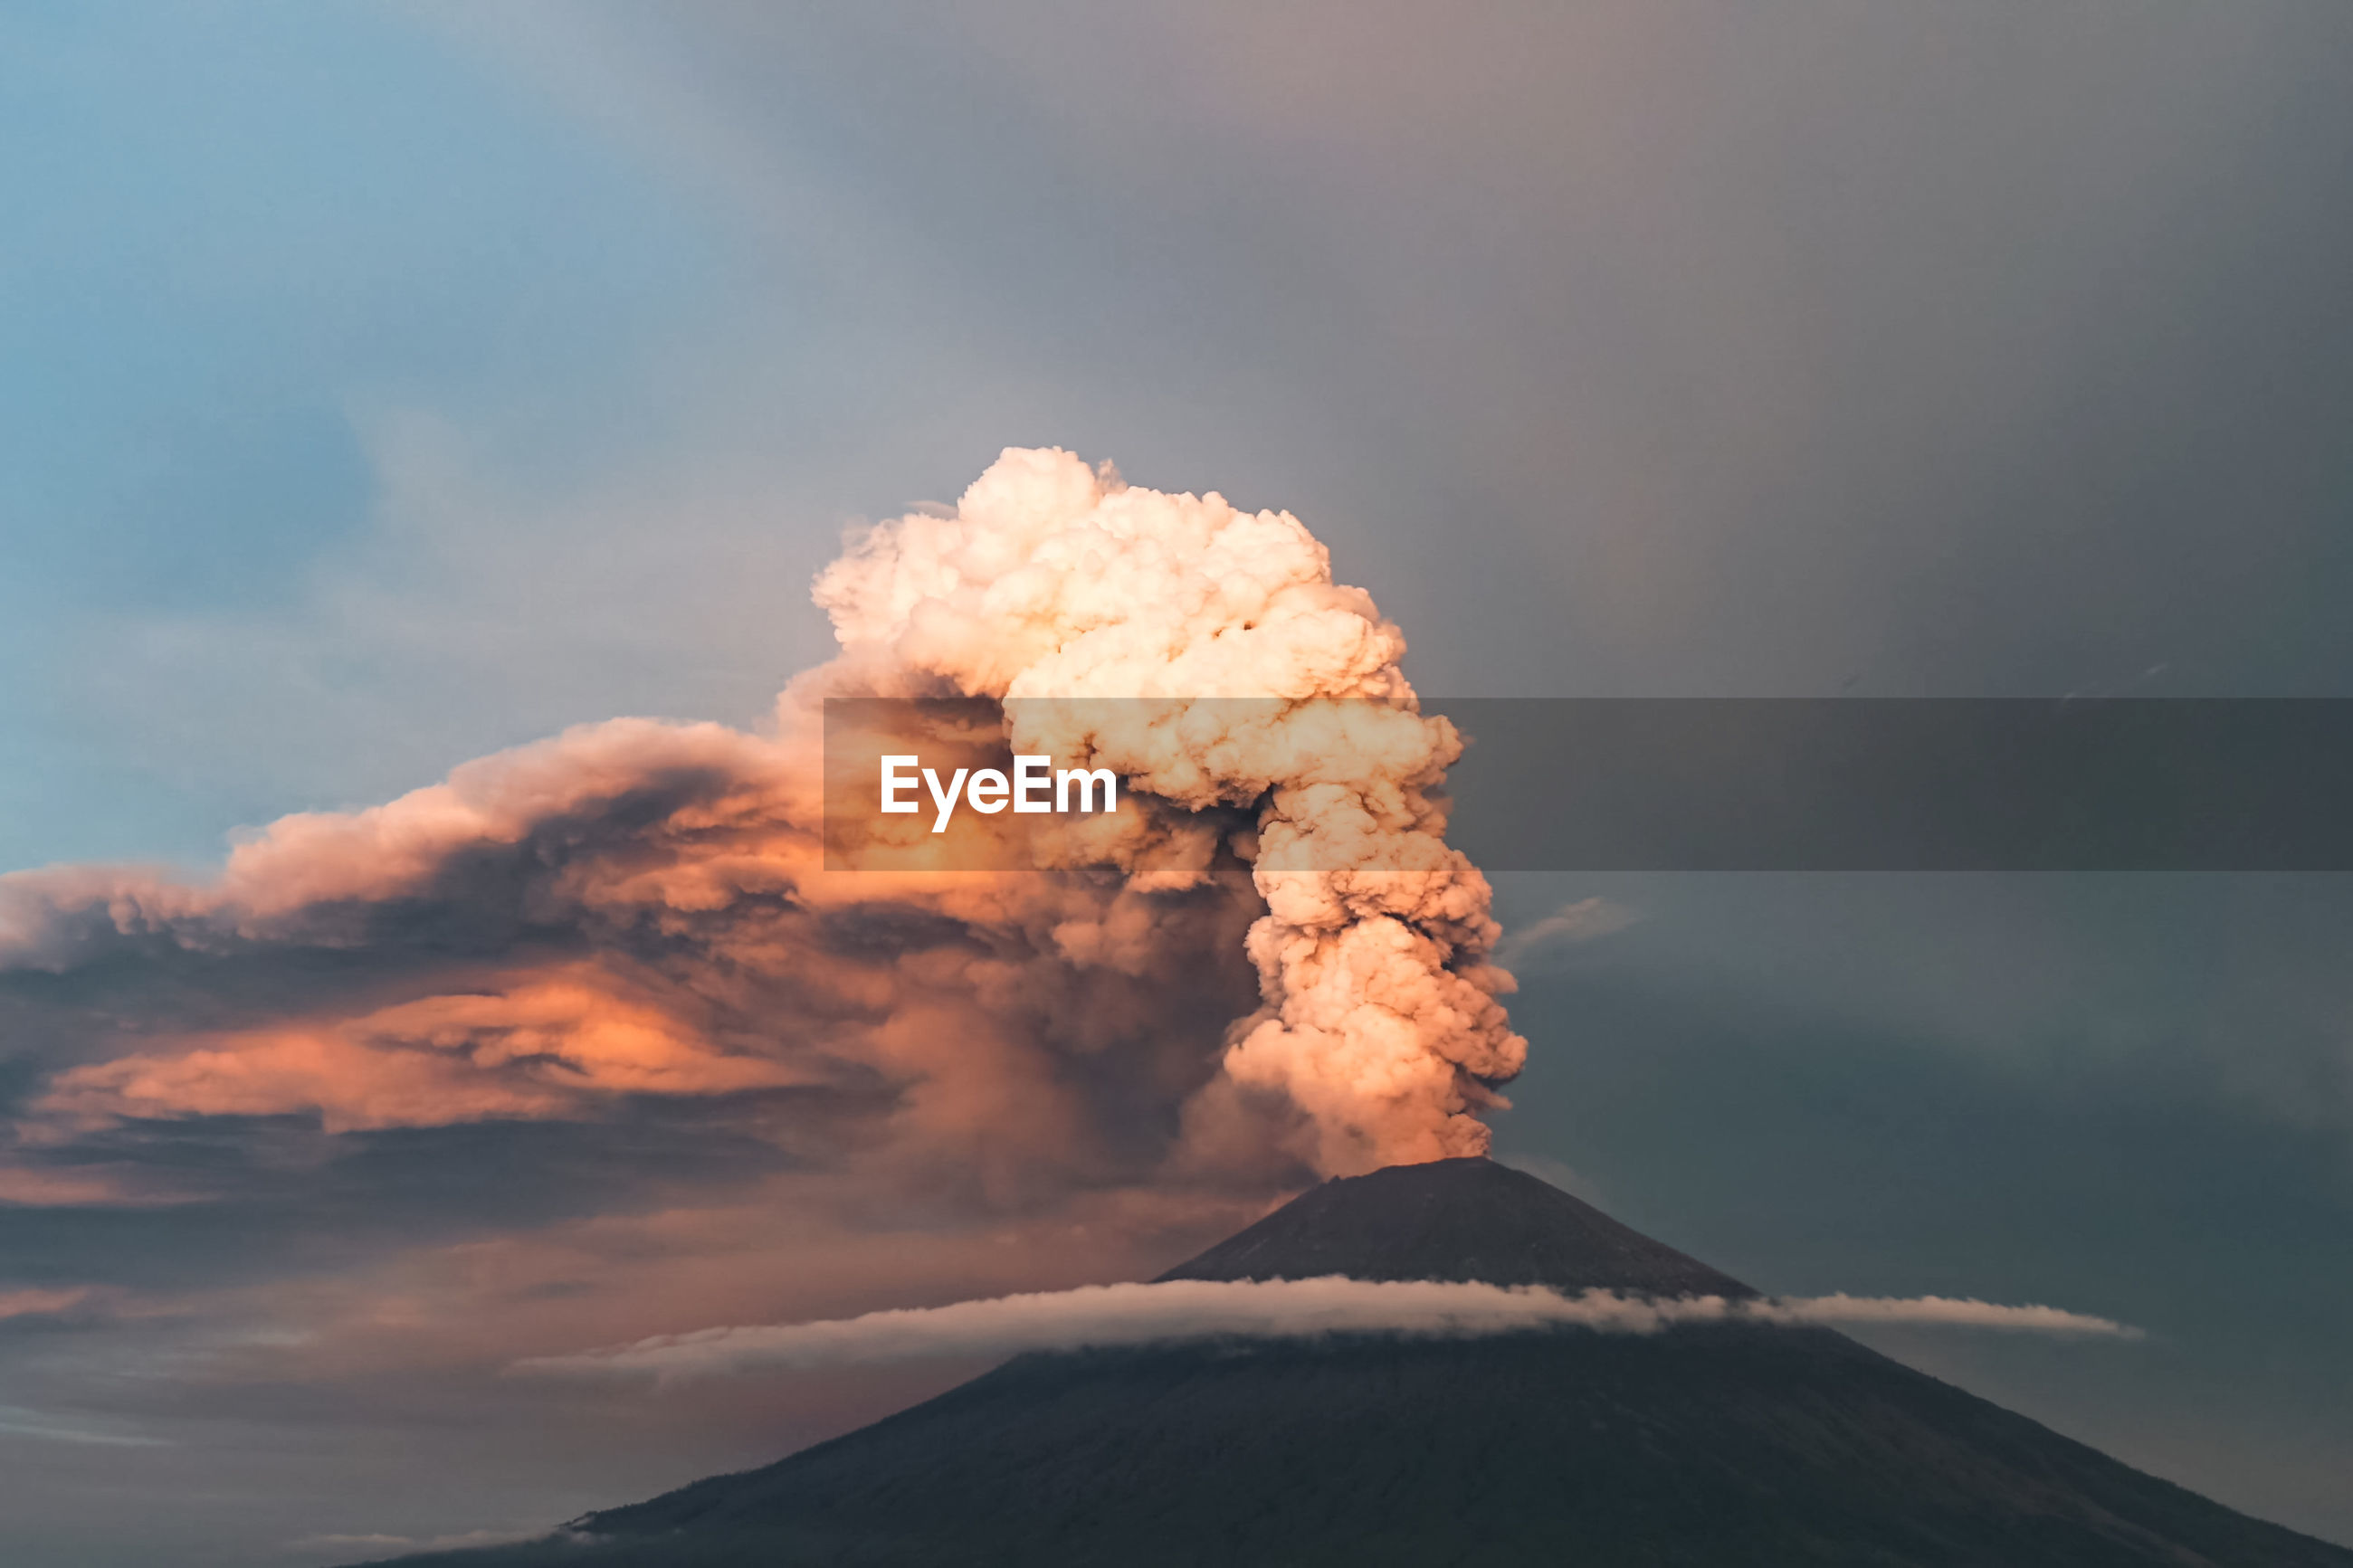 SMOKE EMITTING FROM VOLCANIC MOUNTAIN